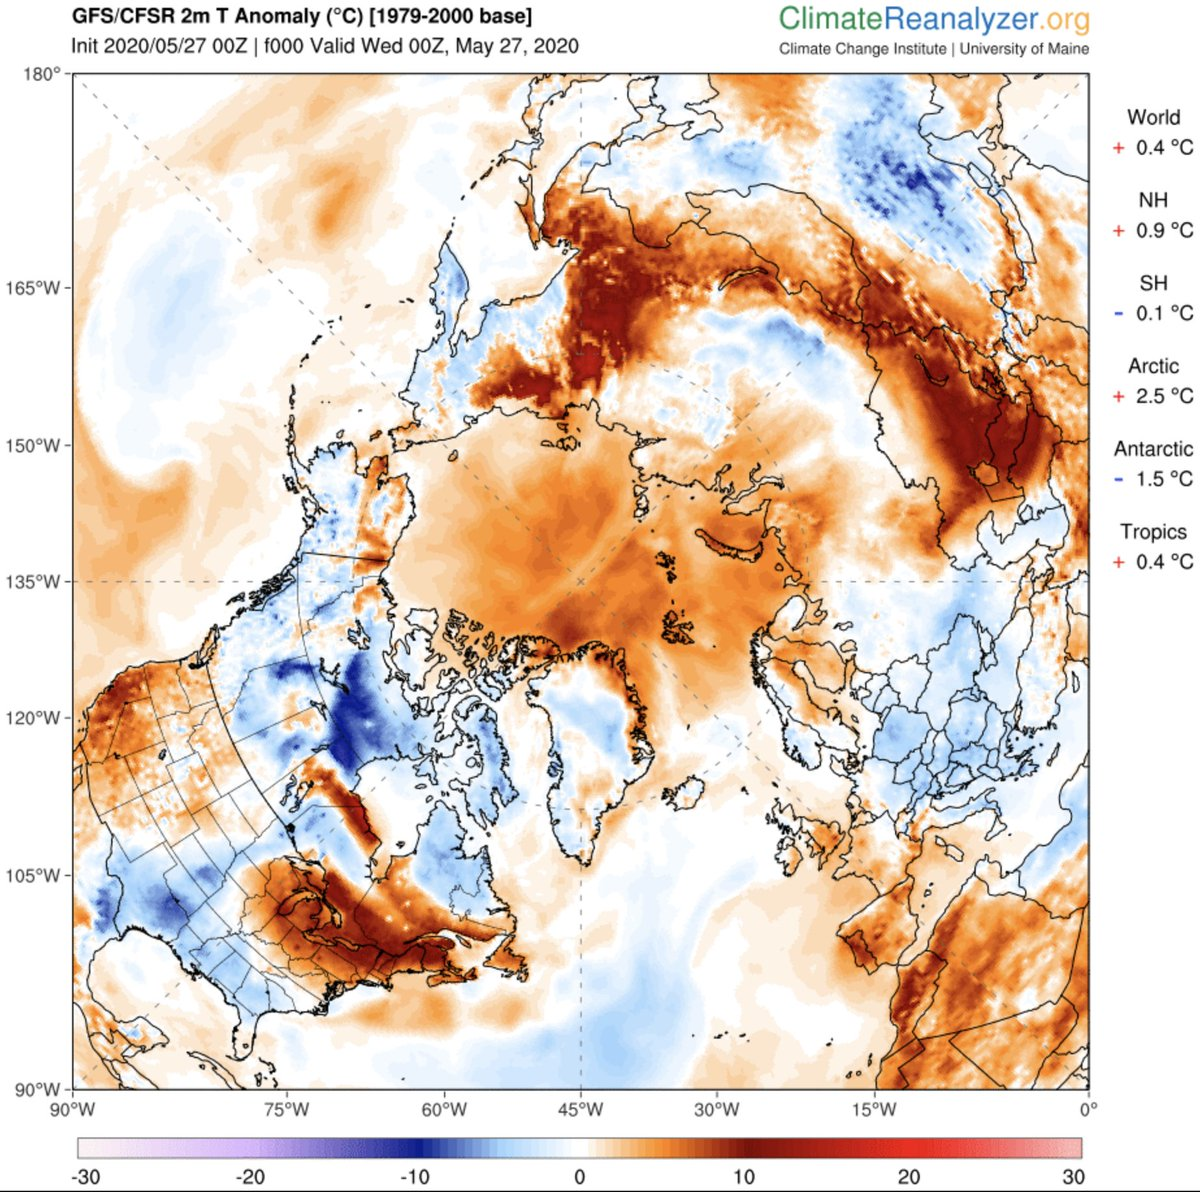 Watch the 10 day forecast for the #arctic at the link below: climatereanalyzer.org/wx/fcst/#gfs.a… The entire shoreline from the Kara Sea to the East Siberian Sea & all the GHG packed permafrost contained therein will undergo what can only be described as BROILING for the entire 10 days. #FFS